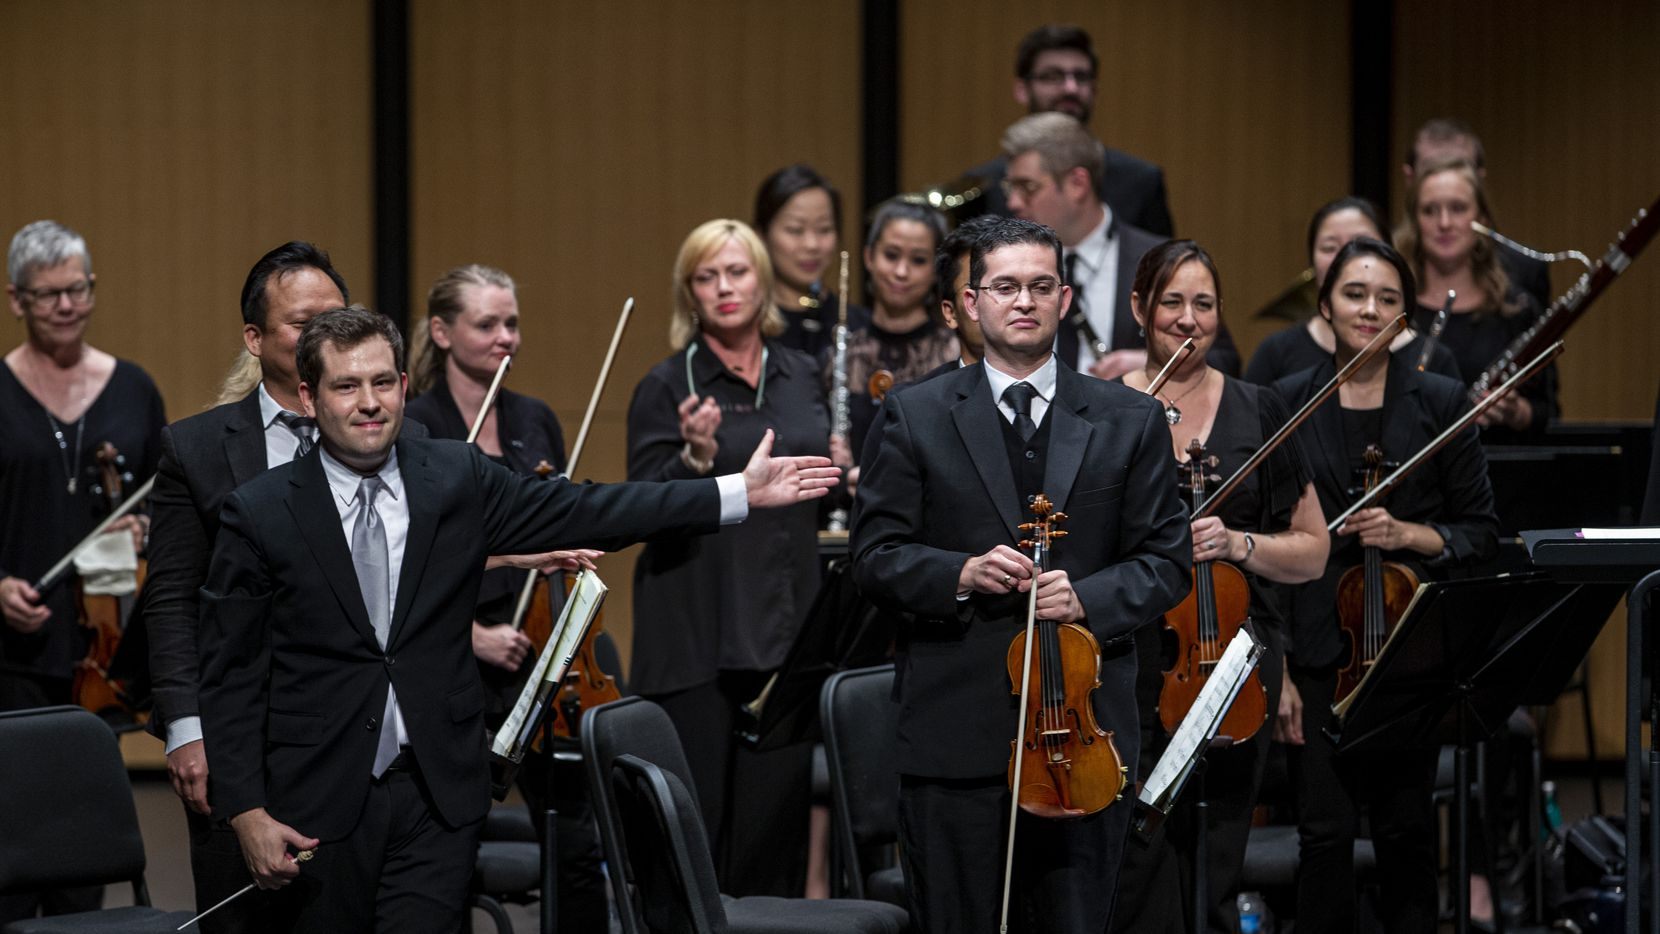 Conductor Richard McKay (left) directs the audiences applause towards violinist Simon Gollo during the season-opening concert by the Dallas Chamber Symphony at Moody Performance Hall in Dallas Oct. 22, 2019.